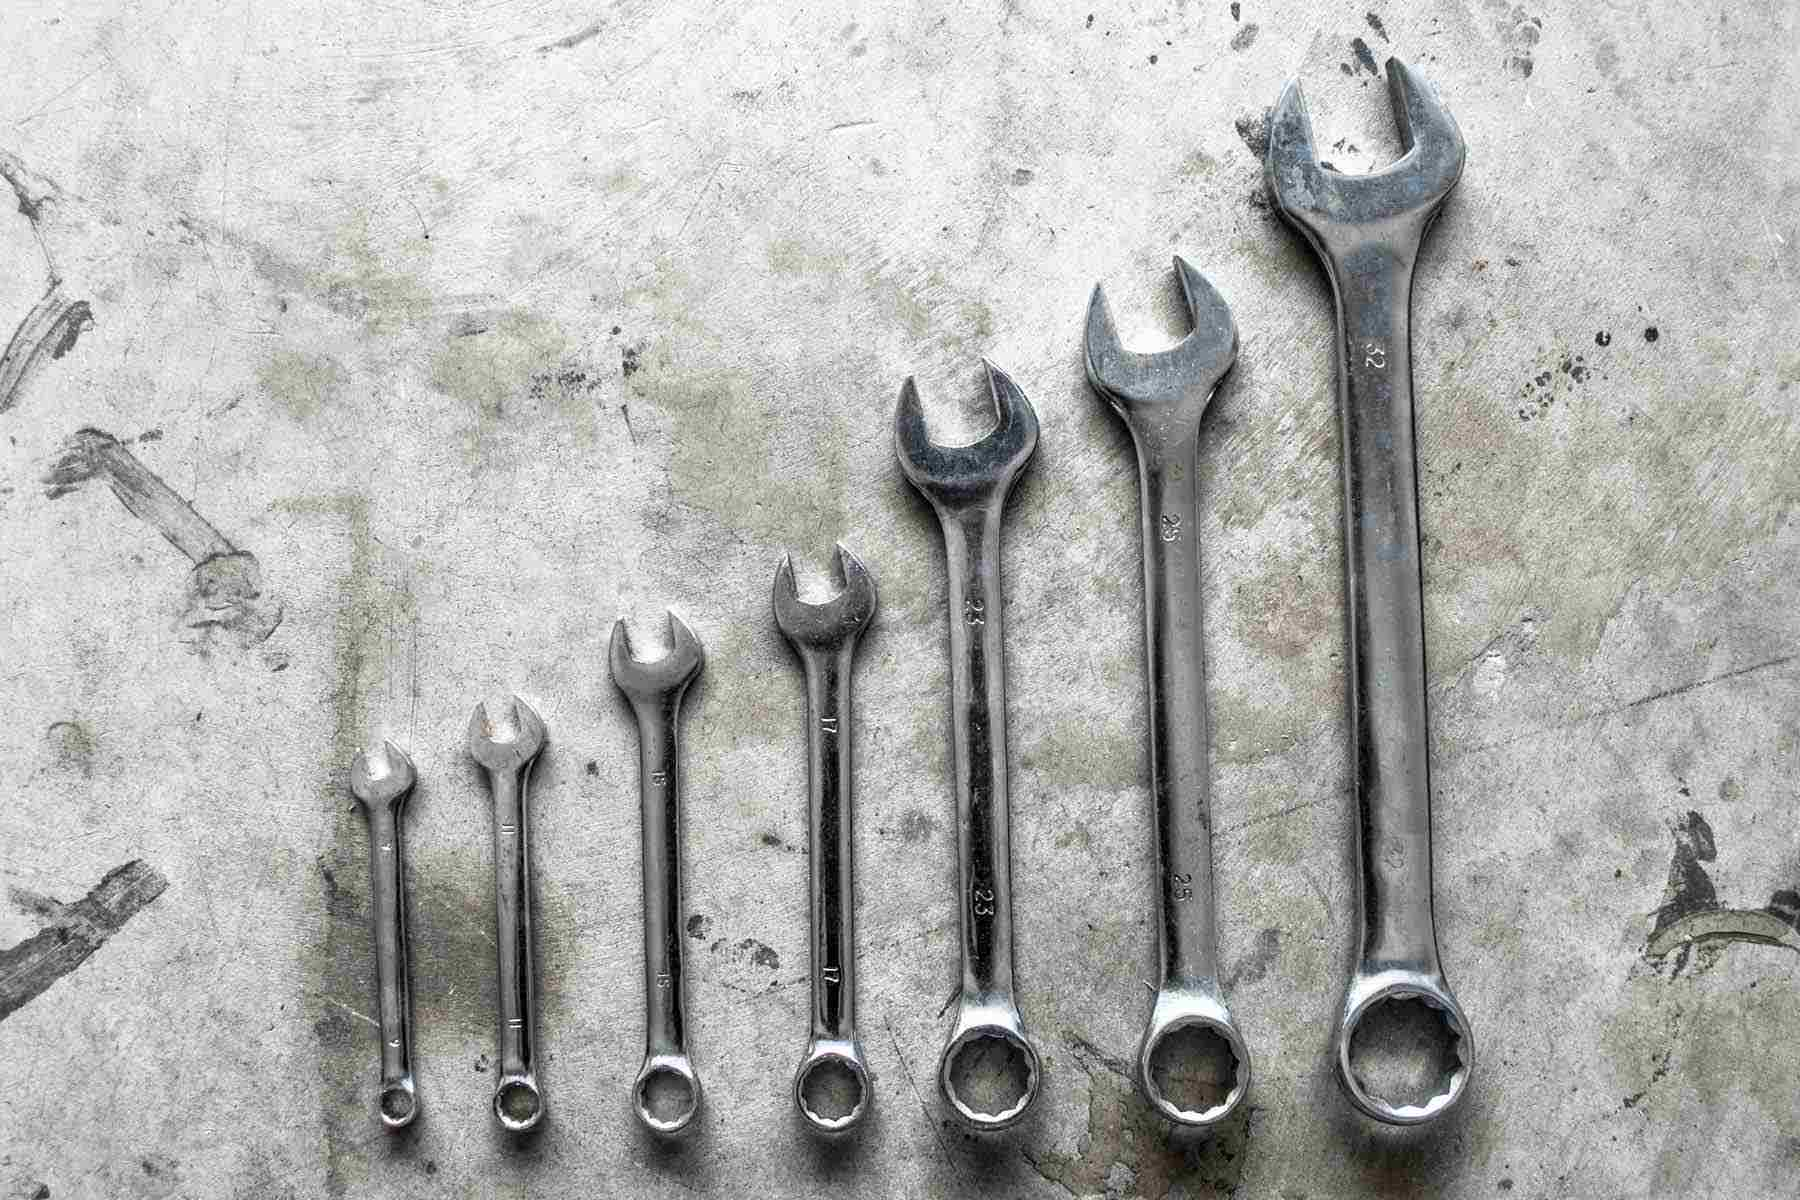 Open end wrenches.